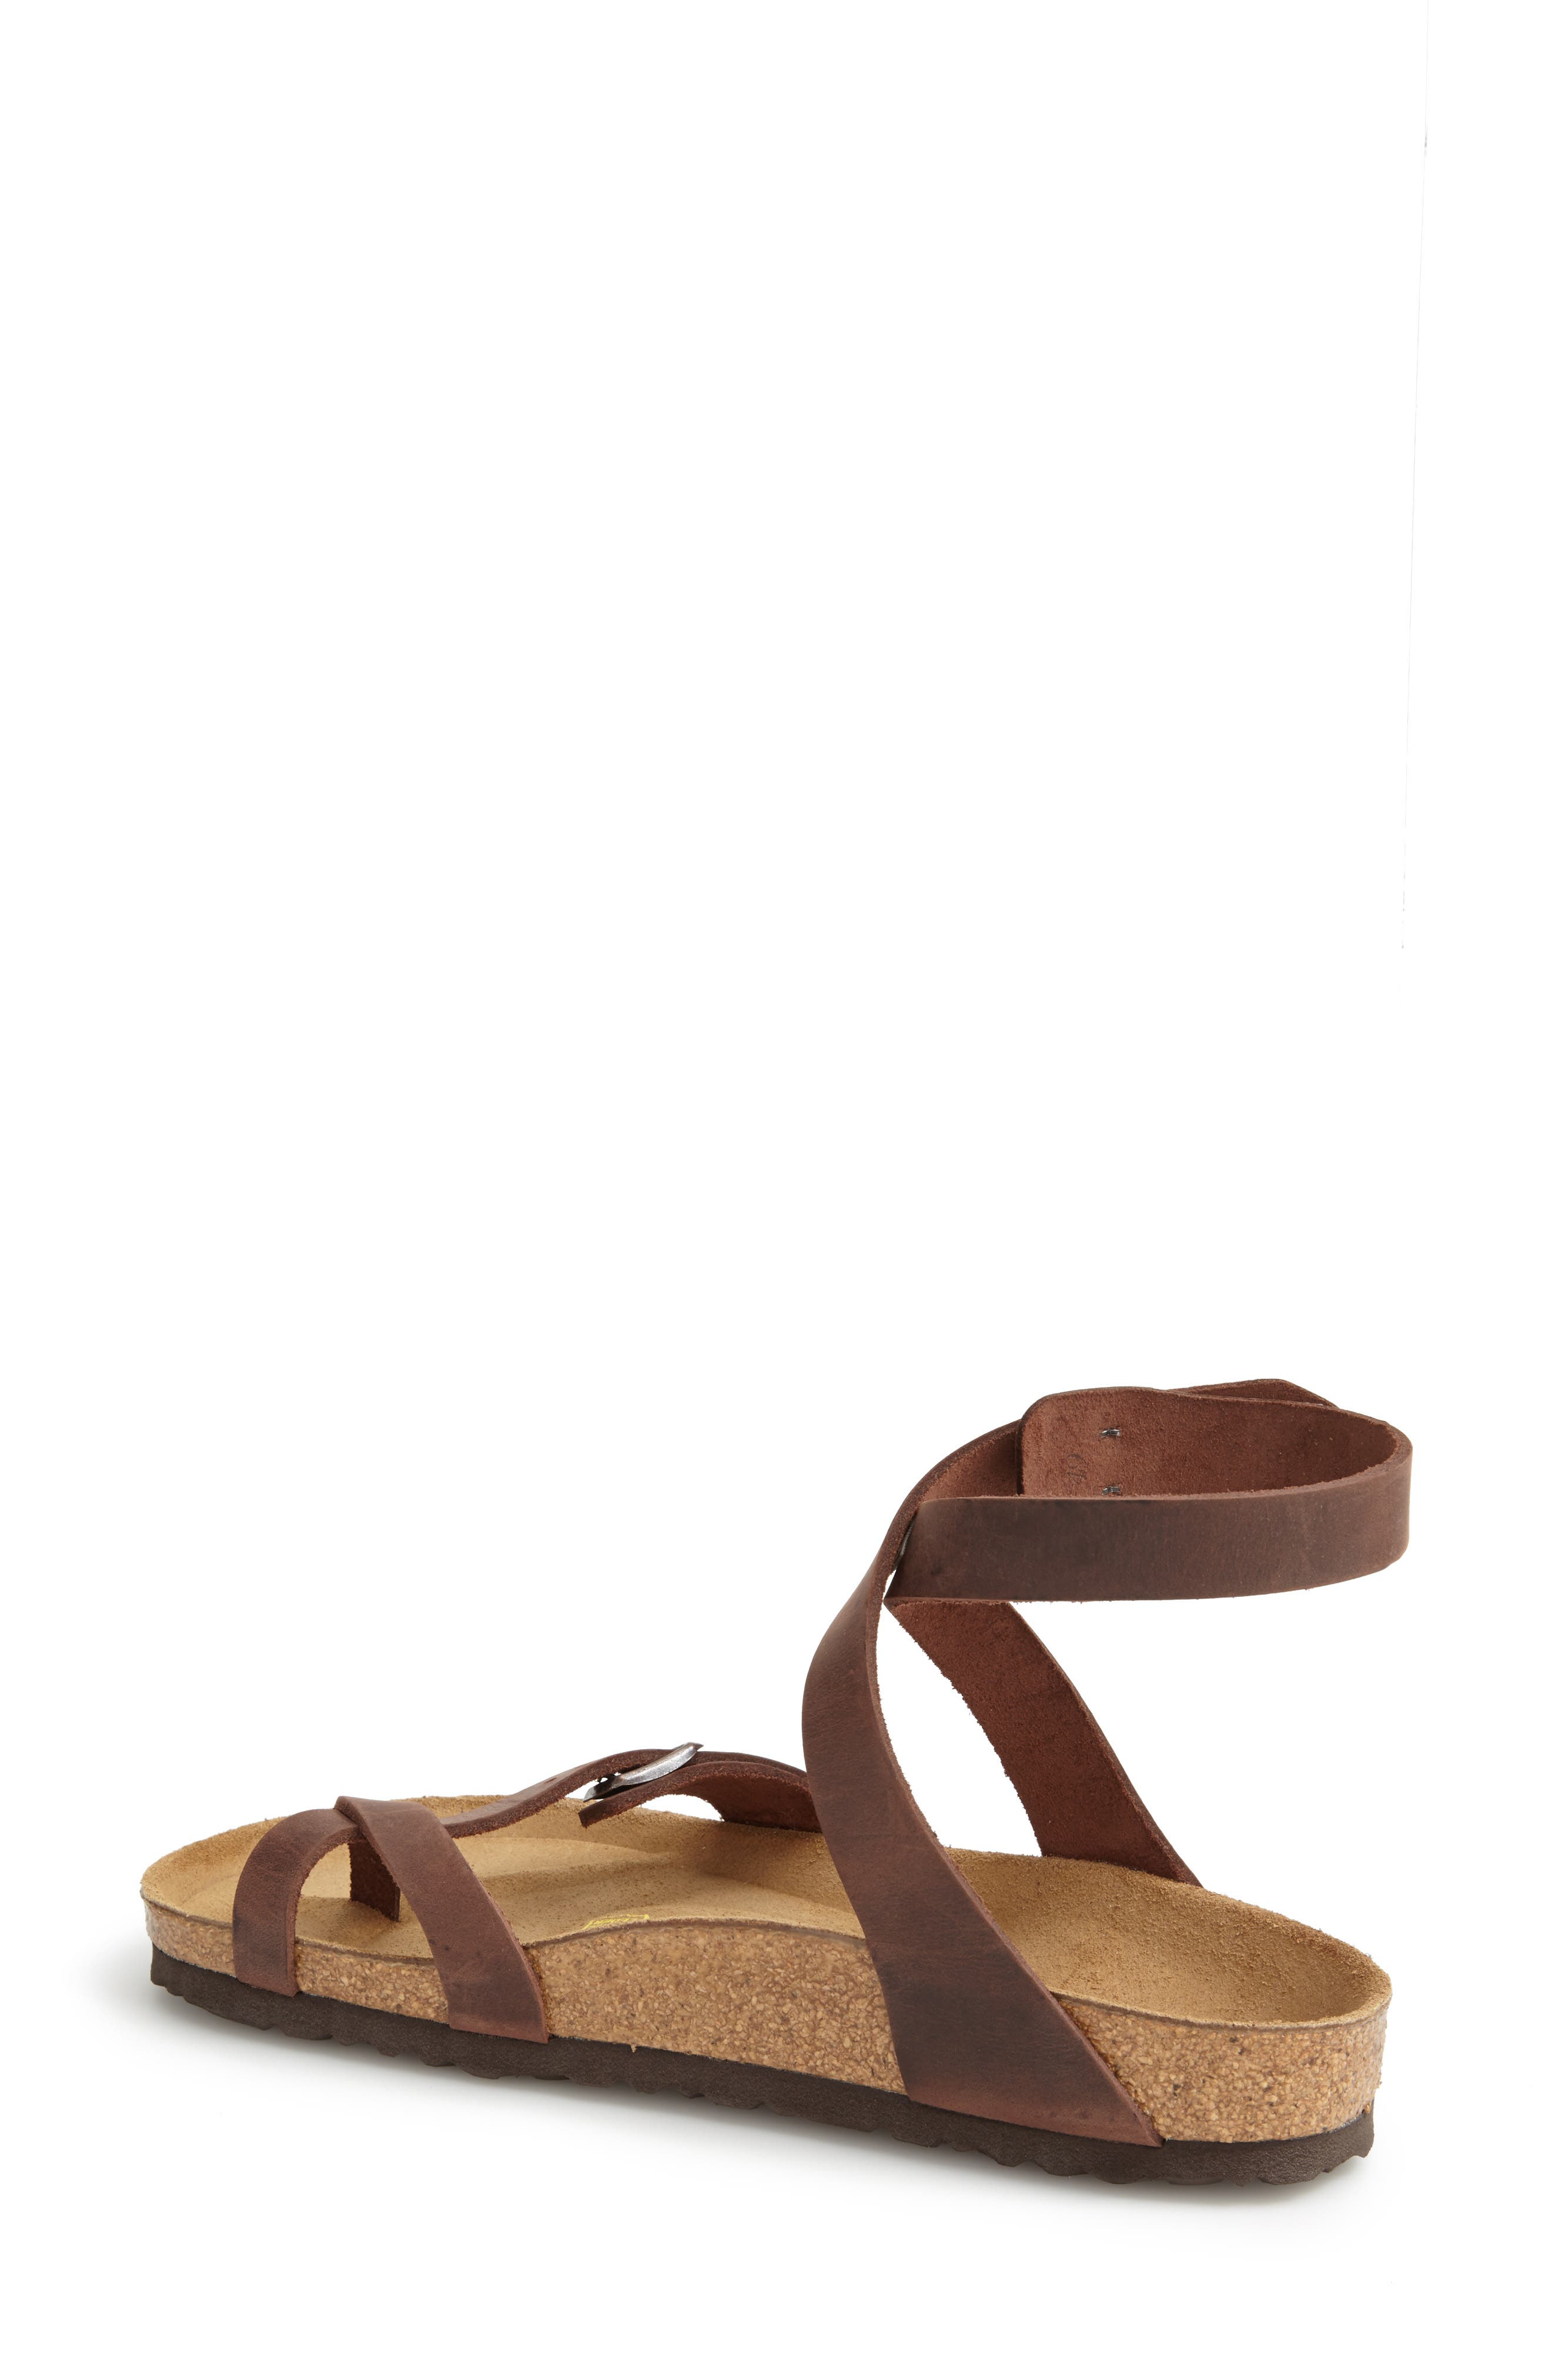 'Yara' Sandal,                         Main,                         color, YARA HABANA OILED LEATHER